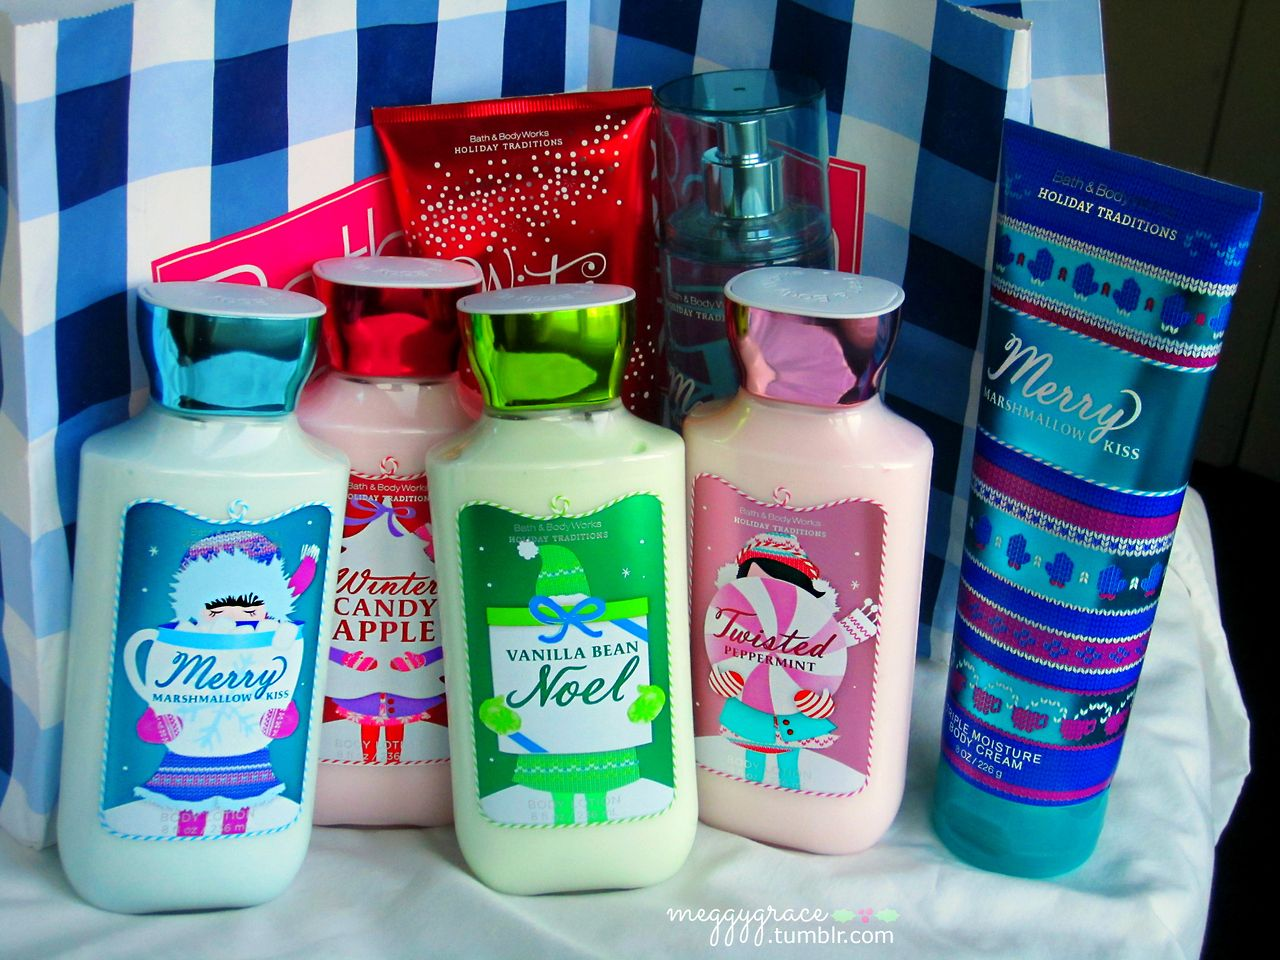 Bath and body works holiday scents - Put These Bath And Body Works Stuff In My Stocking Please